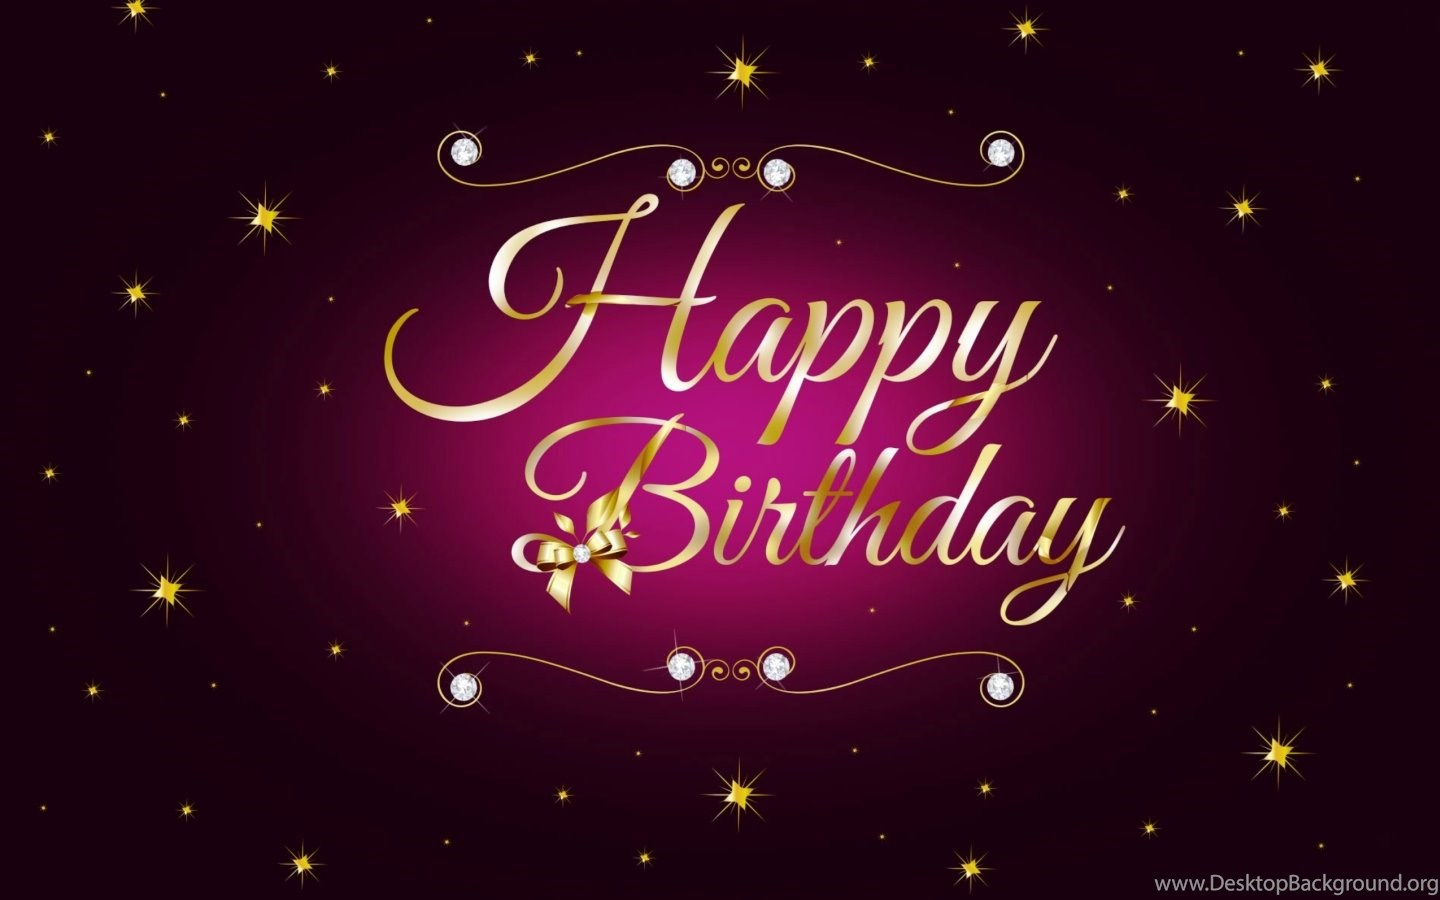 birthday wishes images download ; 1054300_download-free-happy-birthday-wishes-hd-images-the-quotes-land_1440x900_h